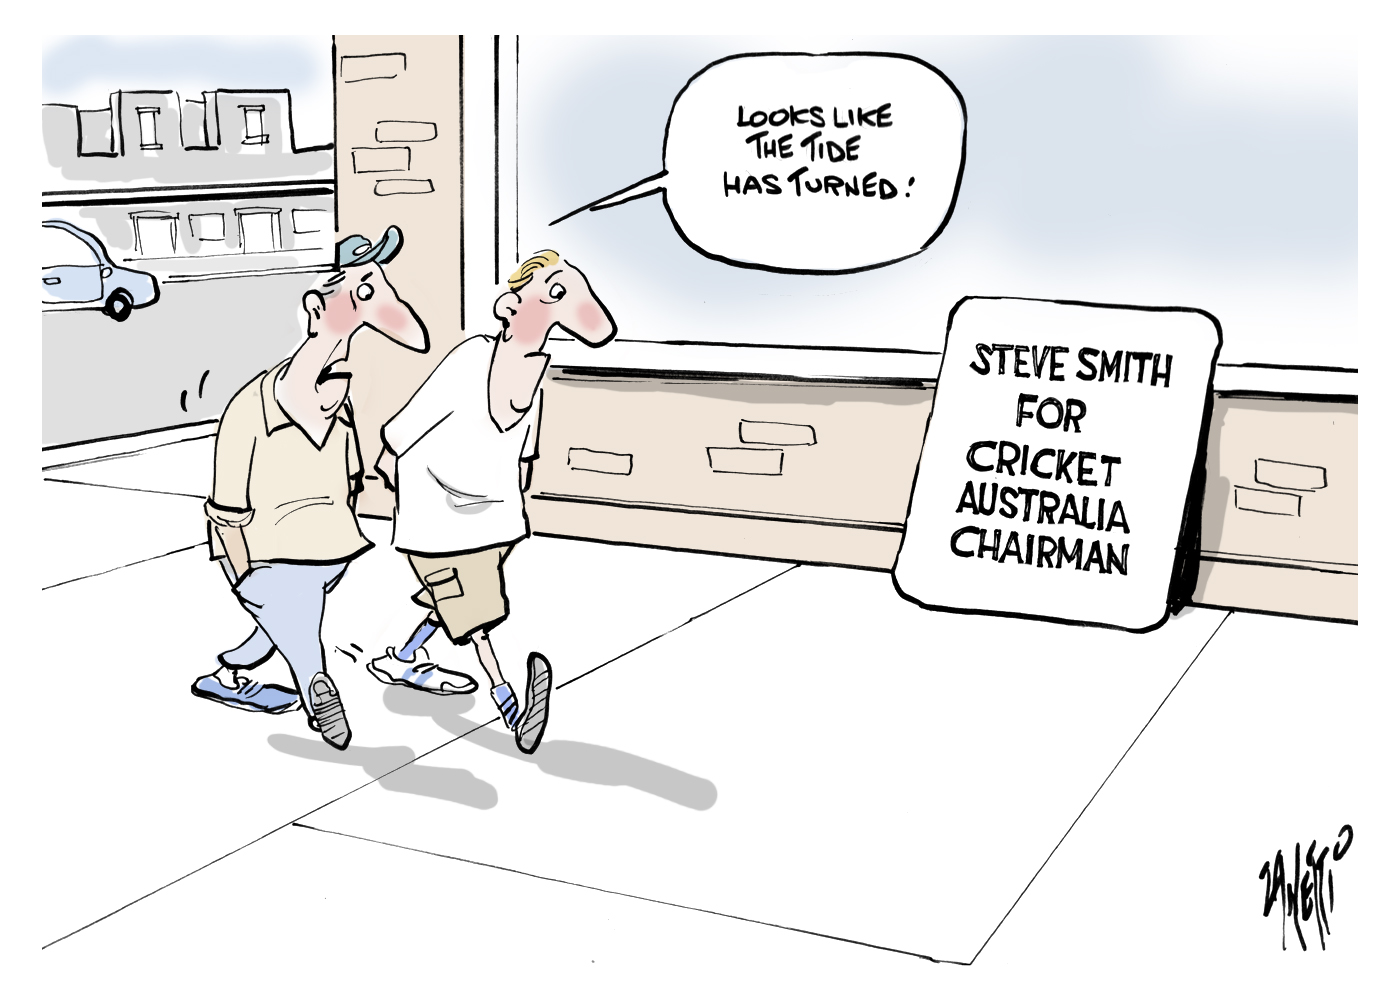 Cricket Australia Chairman